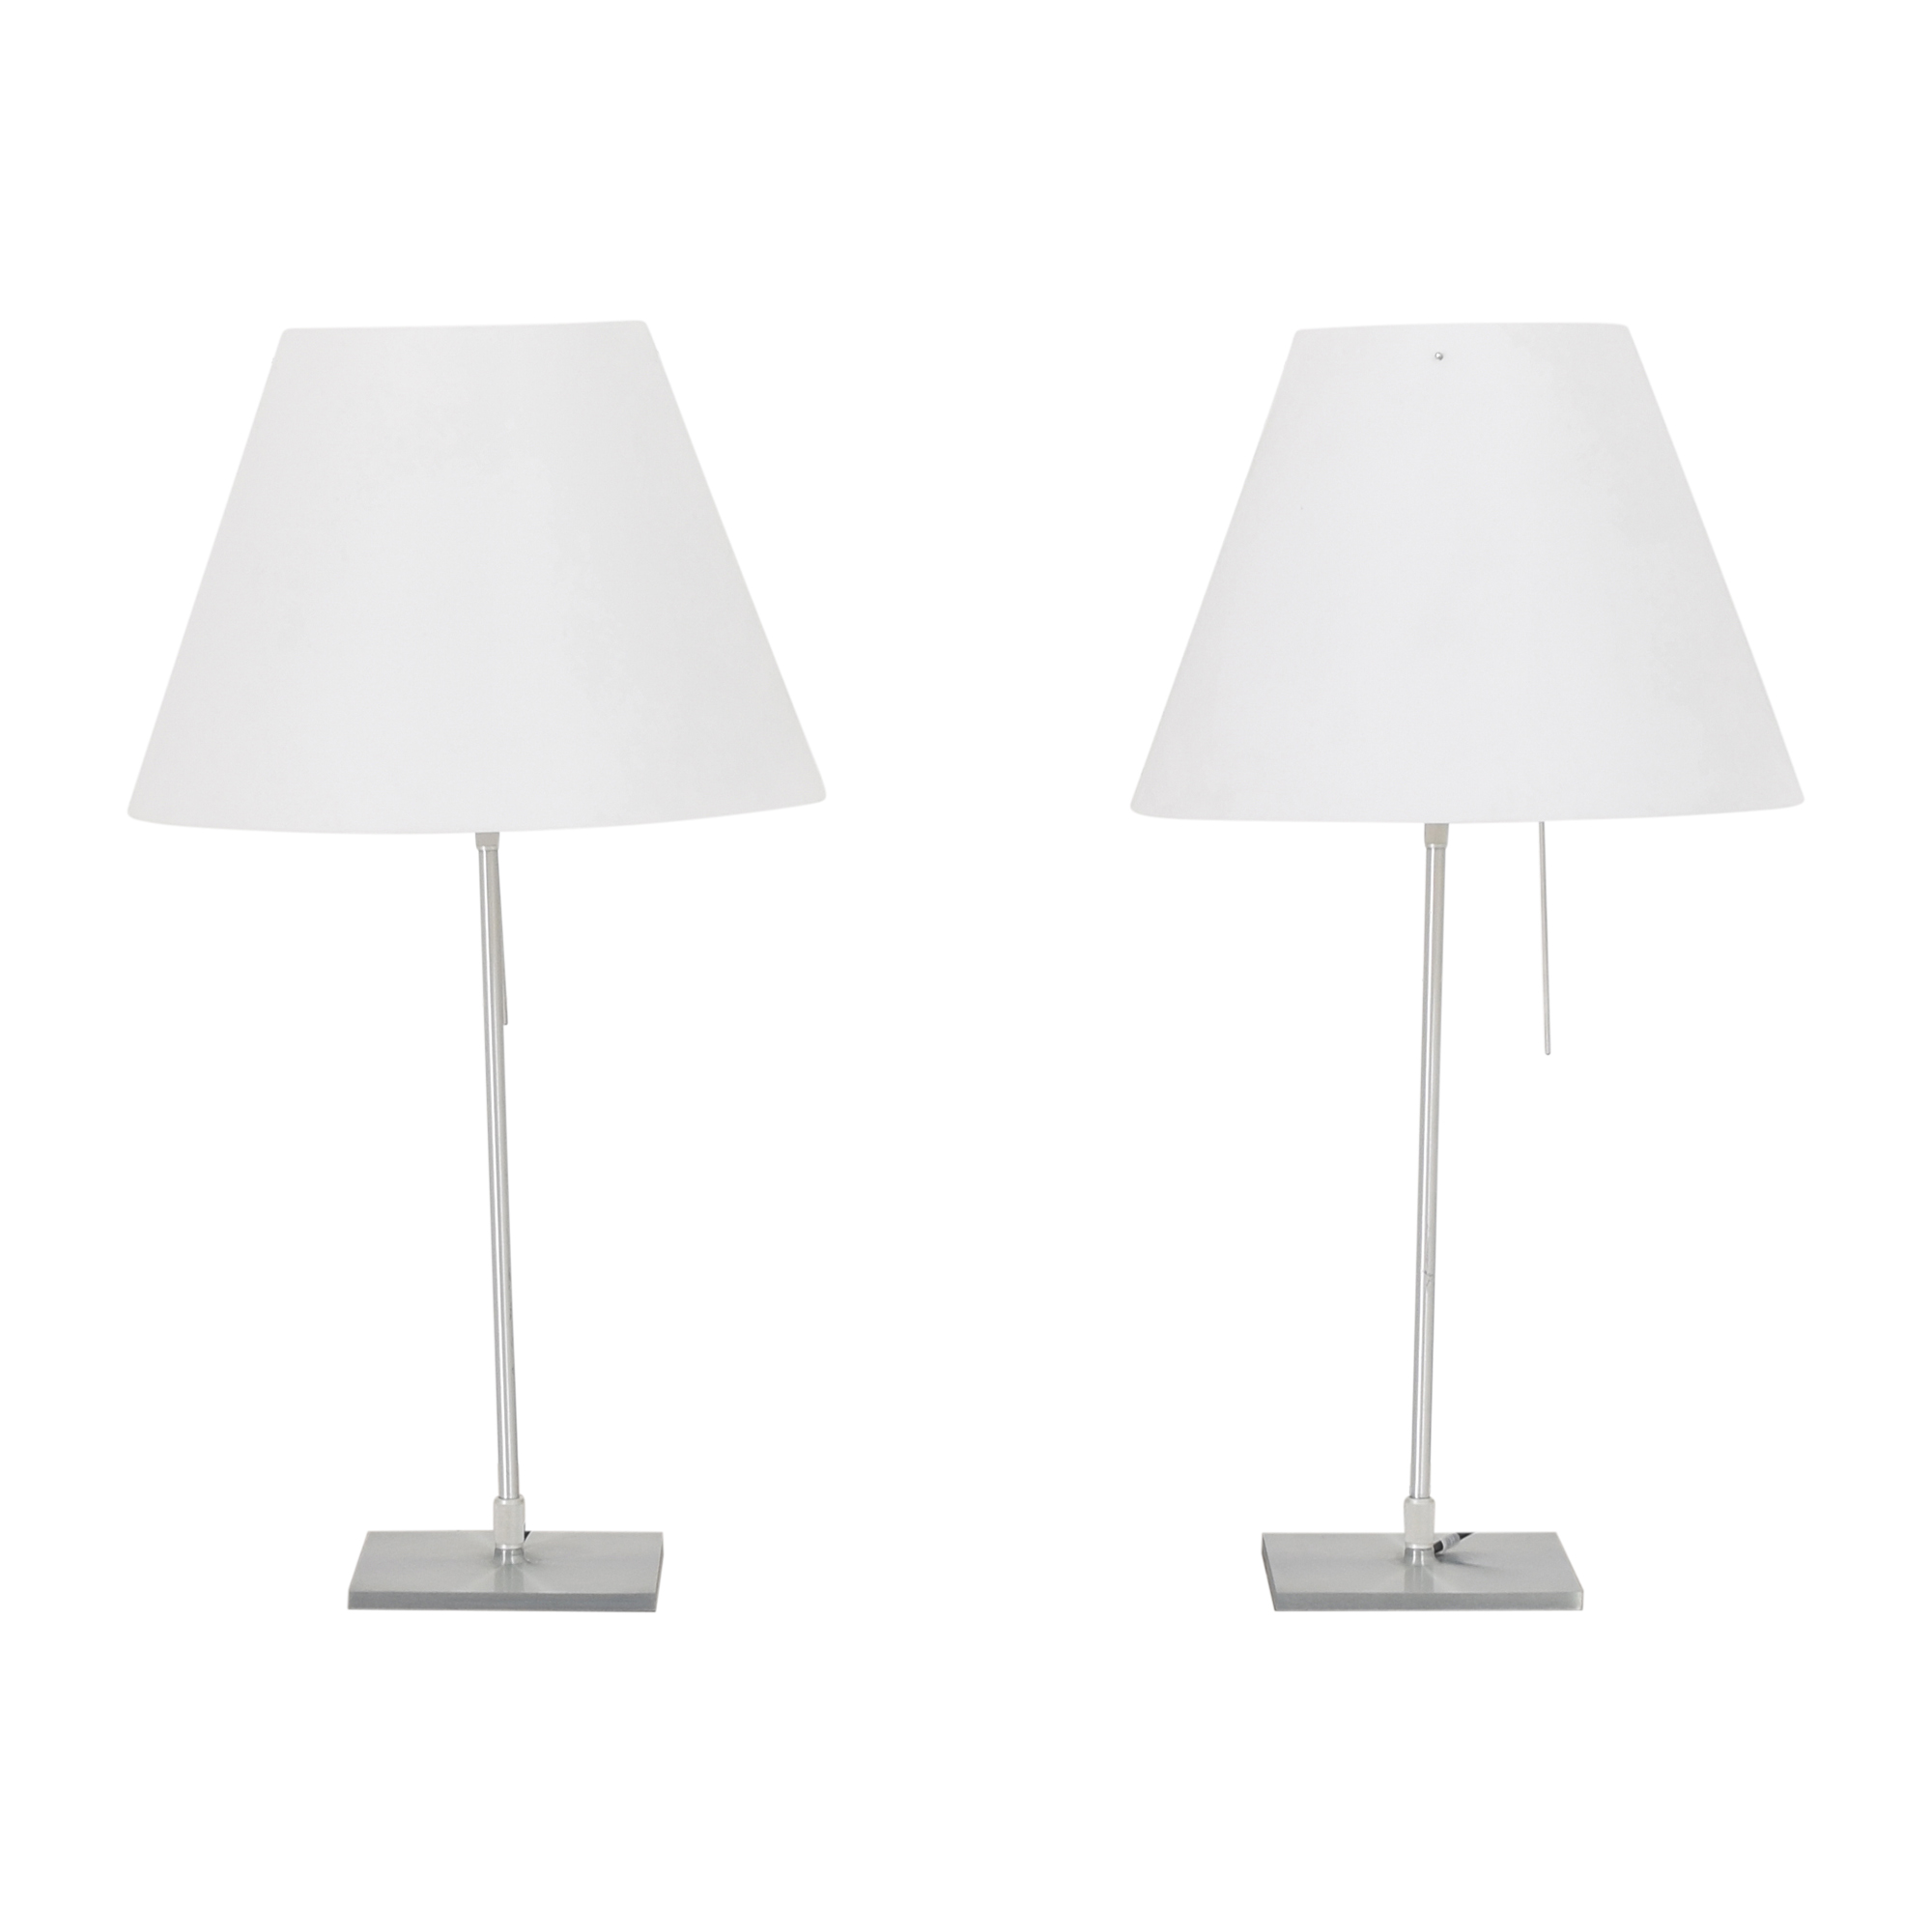 Luceplan Luceplan Costanzina Table Lamps coupon